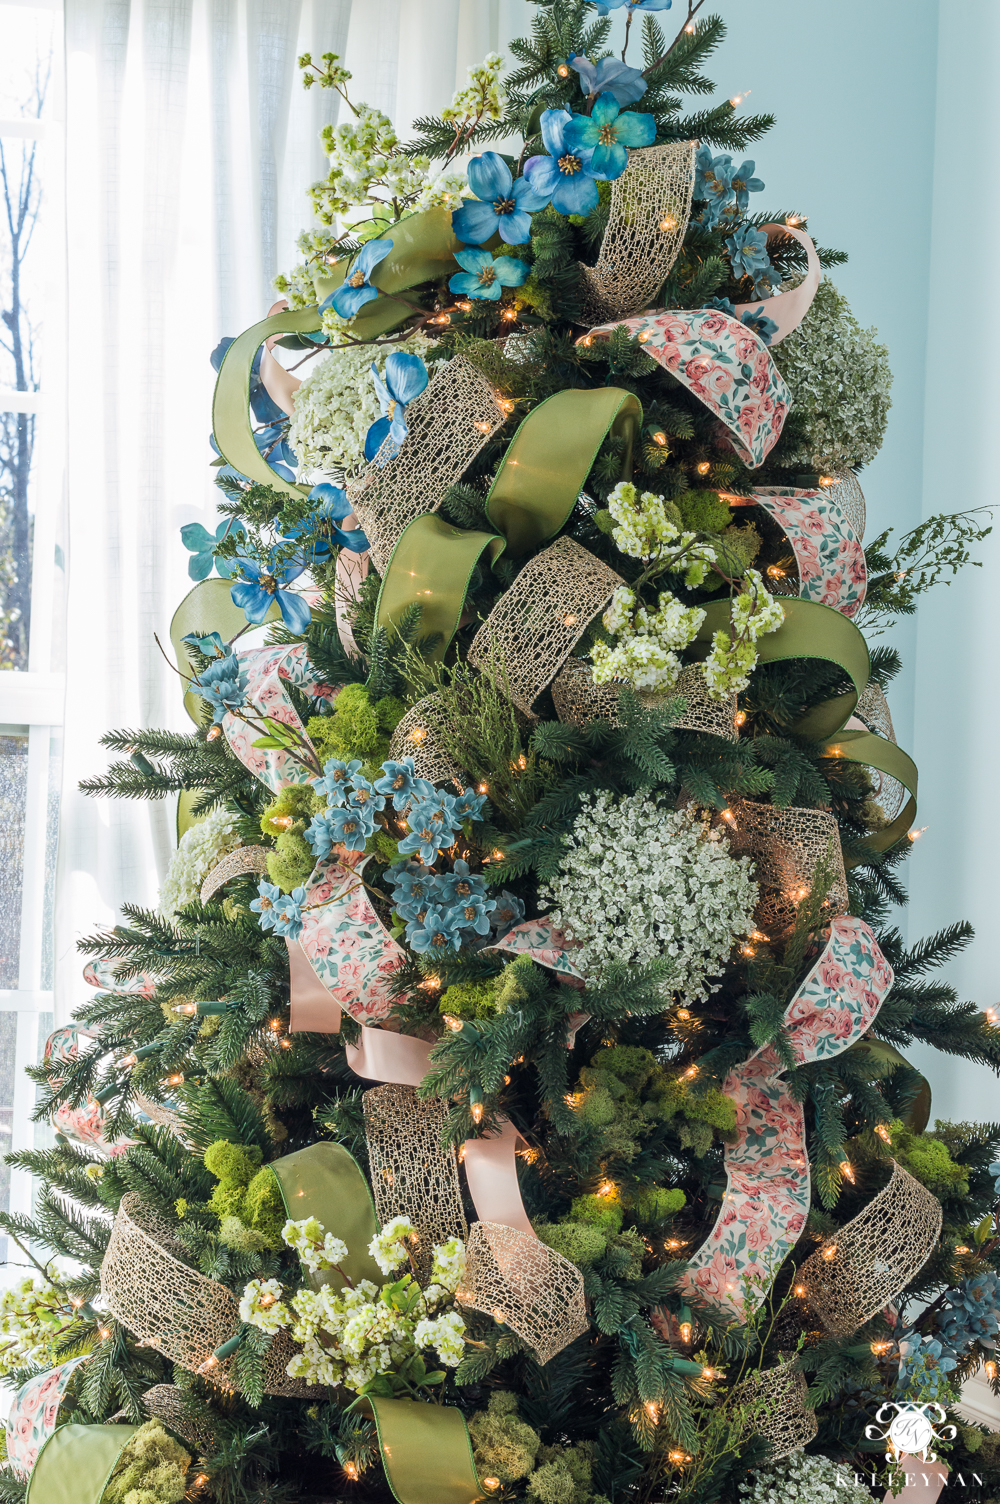 Showy Whimsical Ribbon How To Decorate A Tree Ribbon Ribbon Martha Stewart How To Decorate A Live Tree Ribbon Kelley Nan How To Decorate A Tree How To Decorate A Tree decor How To Decorate A Christmas Tree With Ribbon